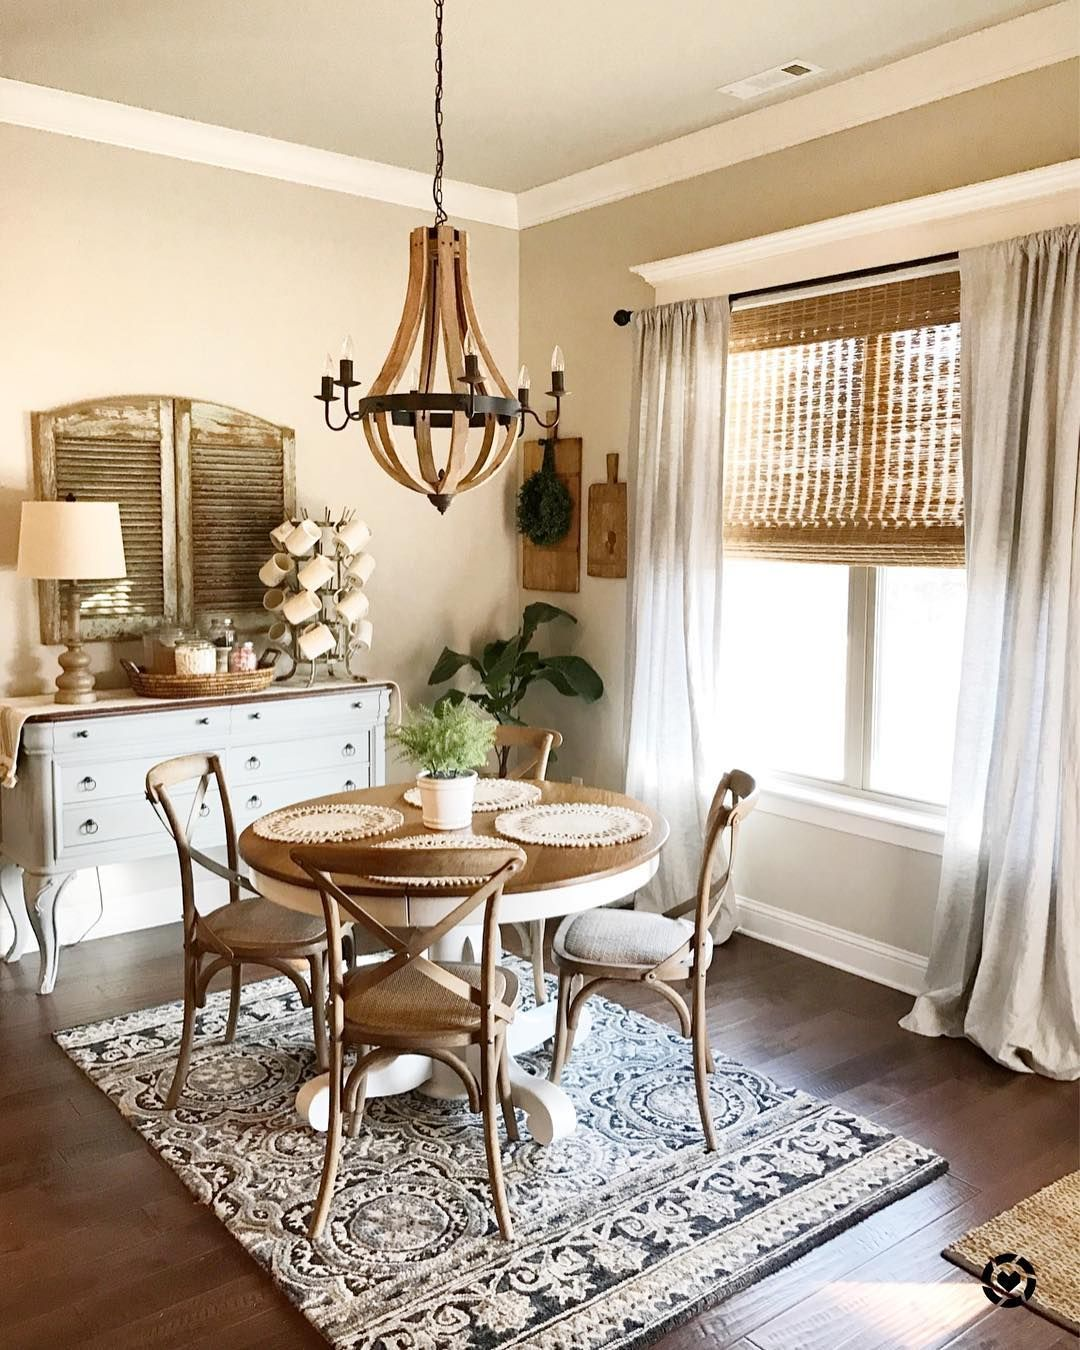 20 Small Dining Room Ideas On A Budget: French Country Dining Room